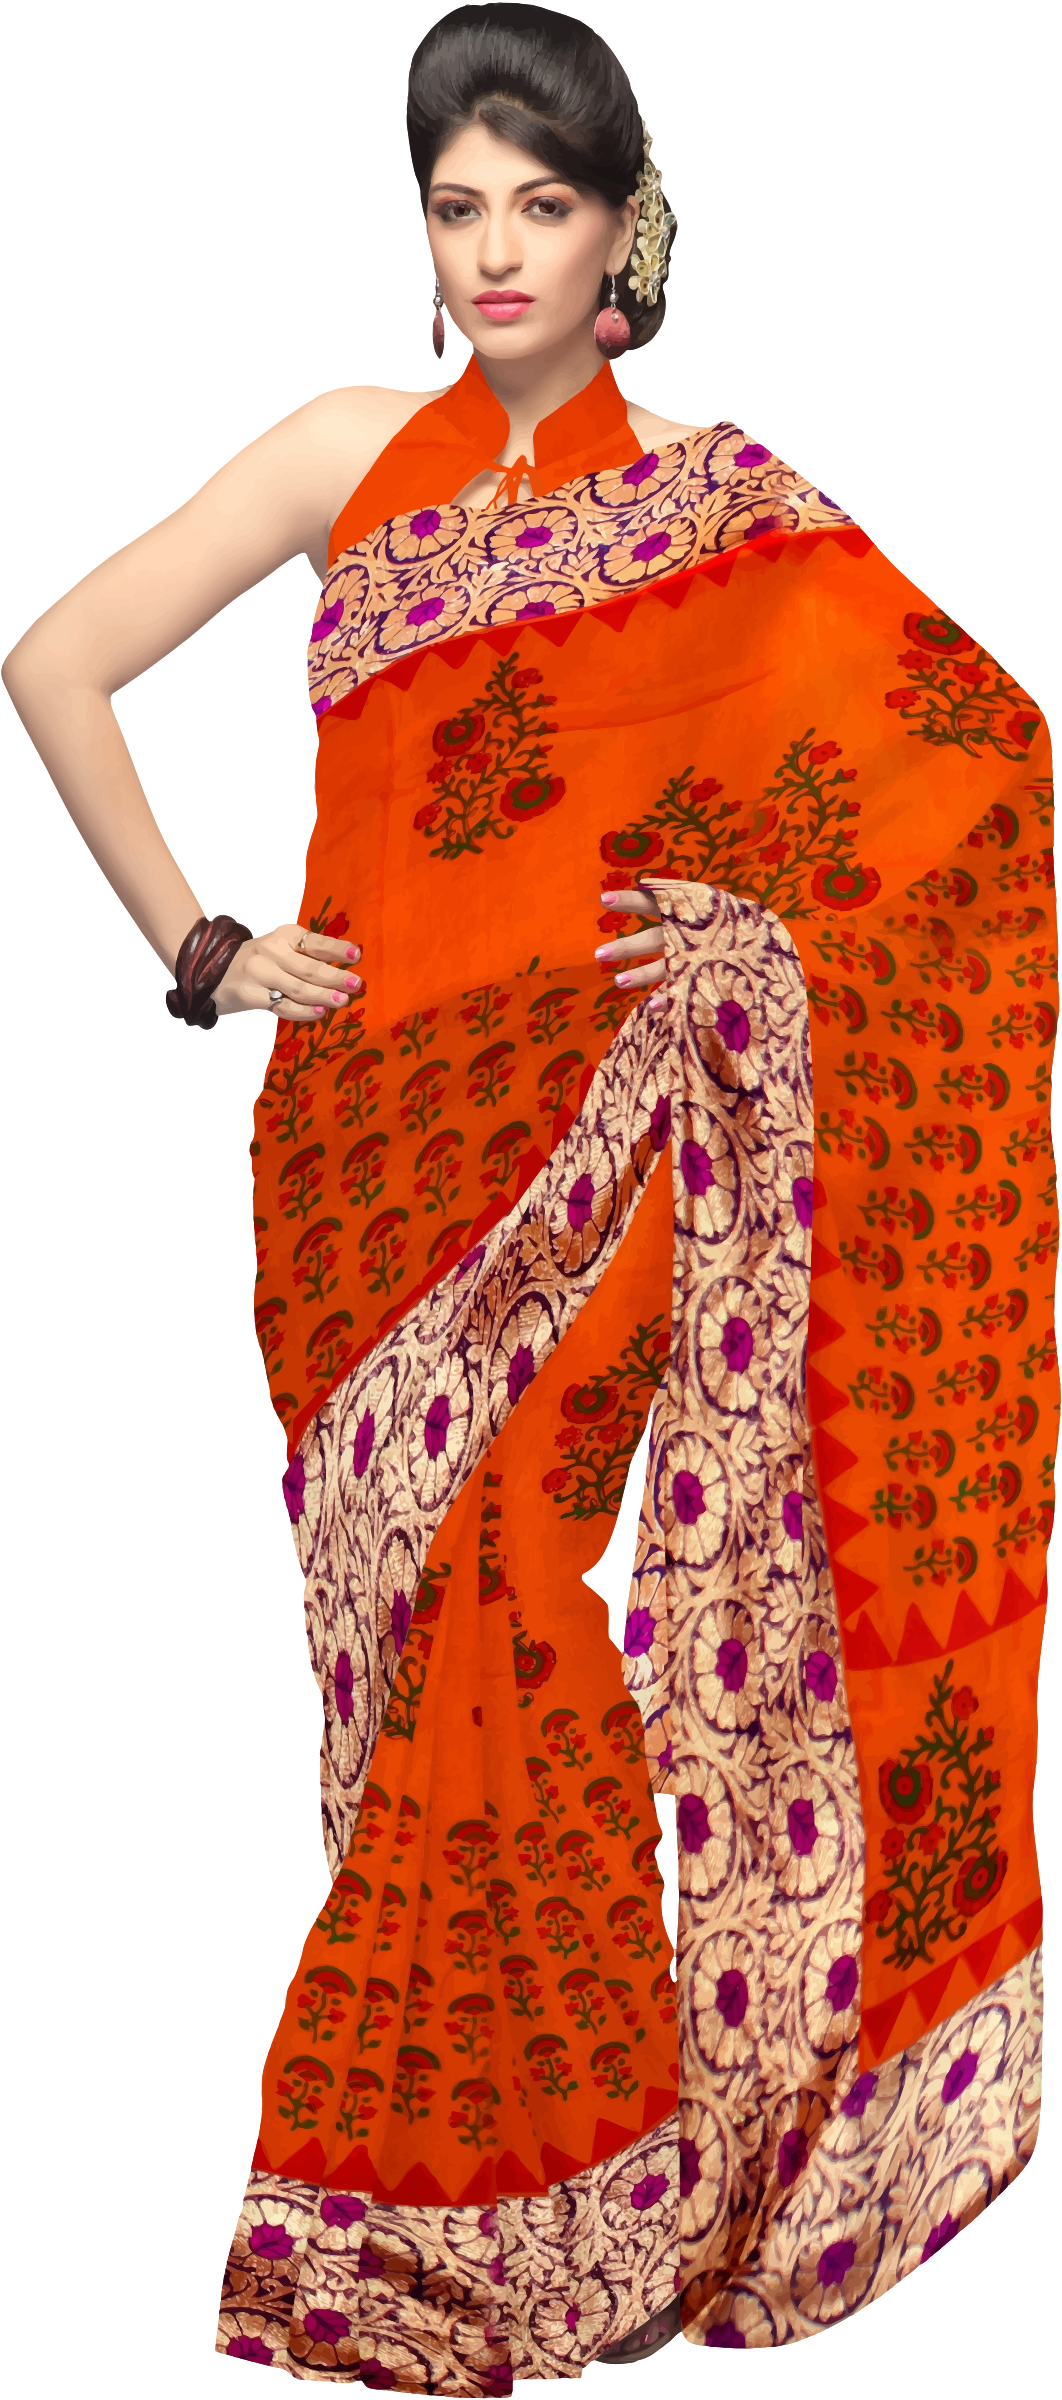 Woman in saree 2 by Firkin